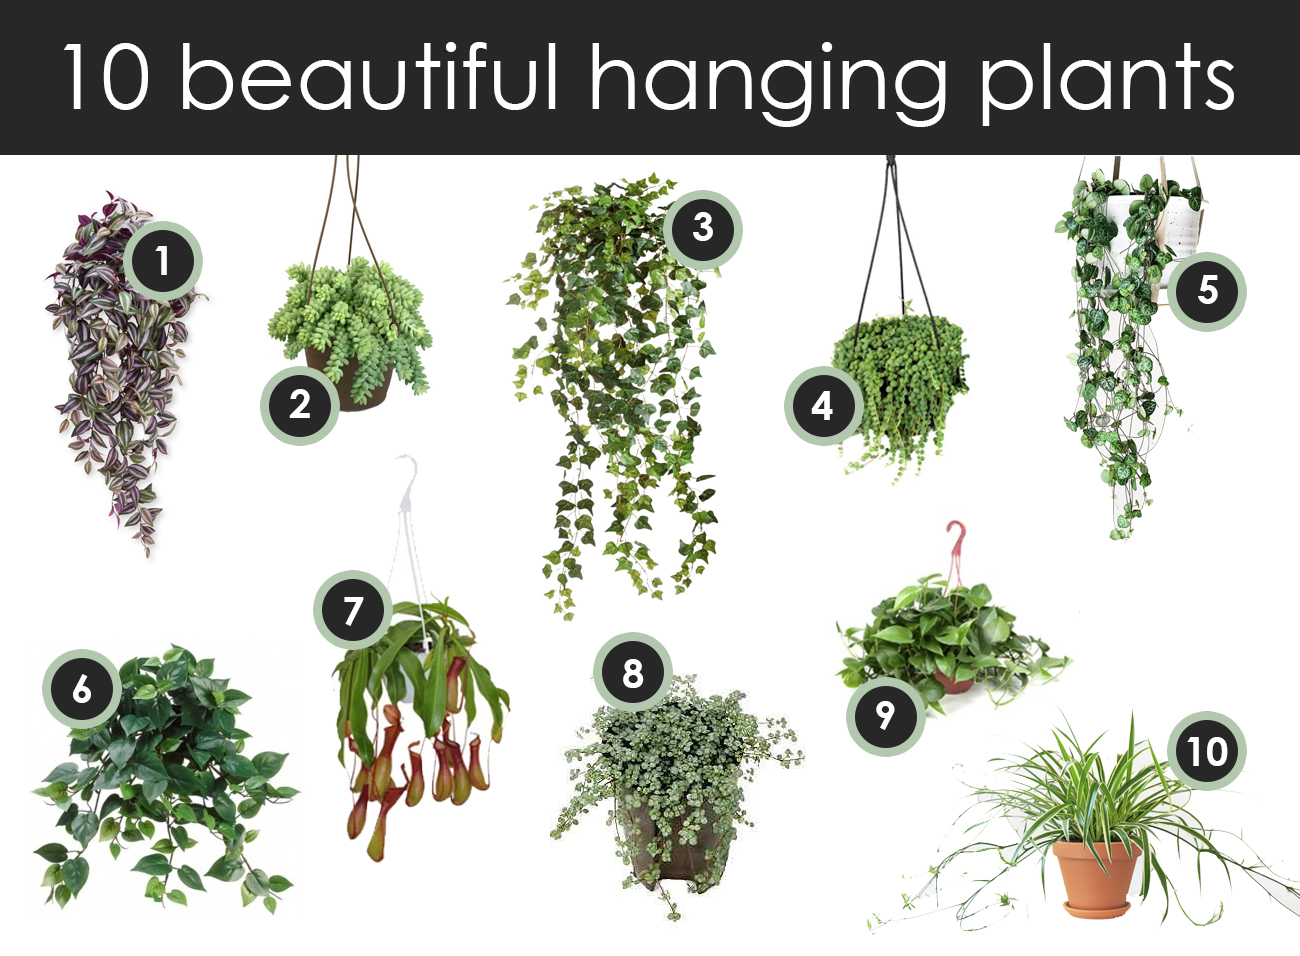 Top 10 hanging plants